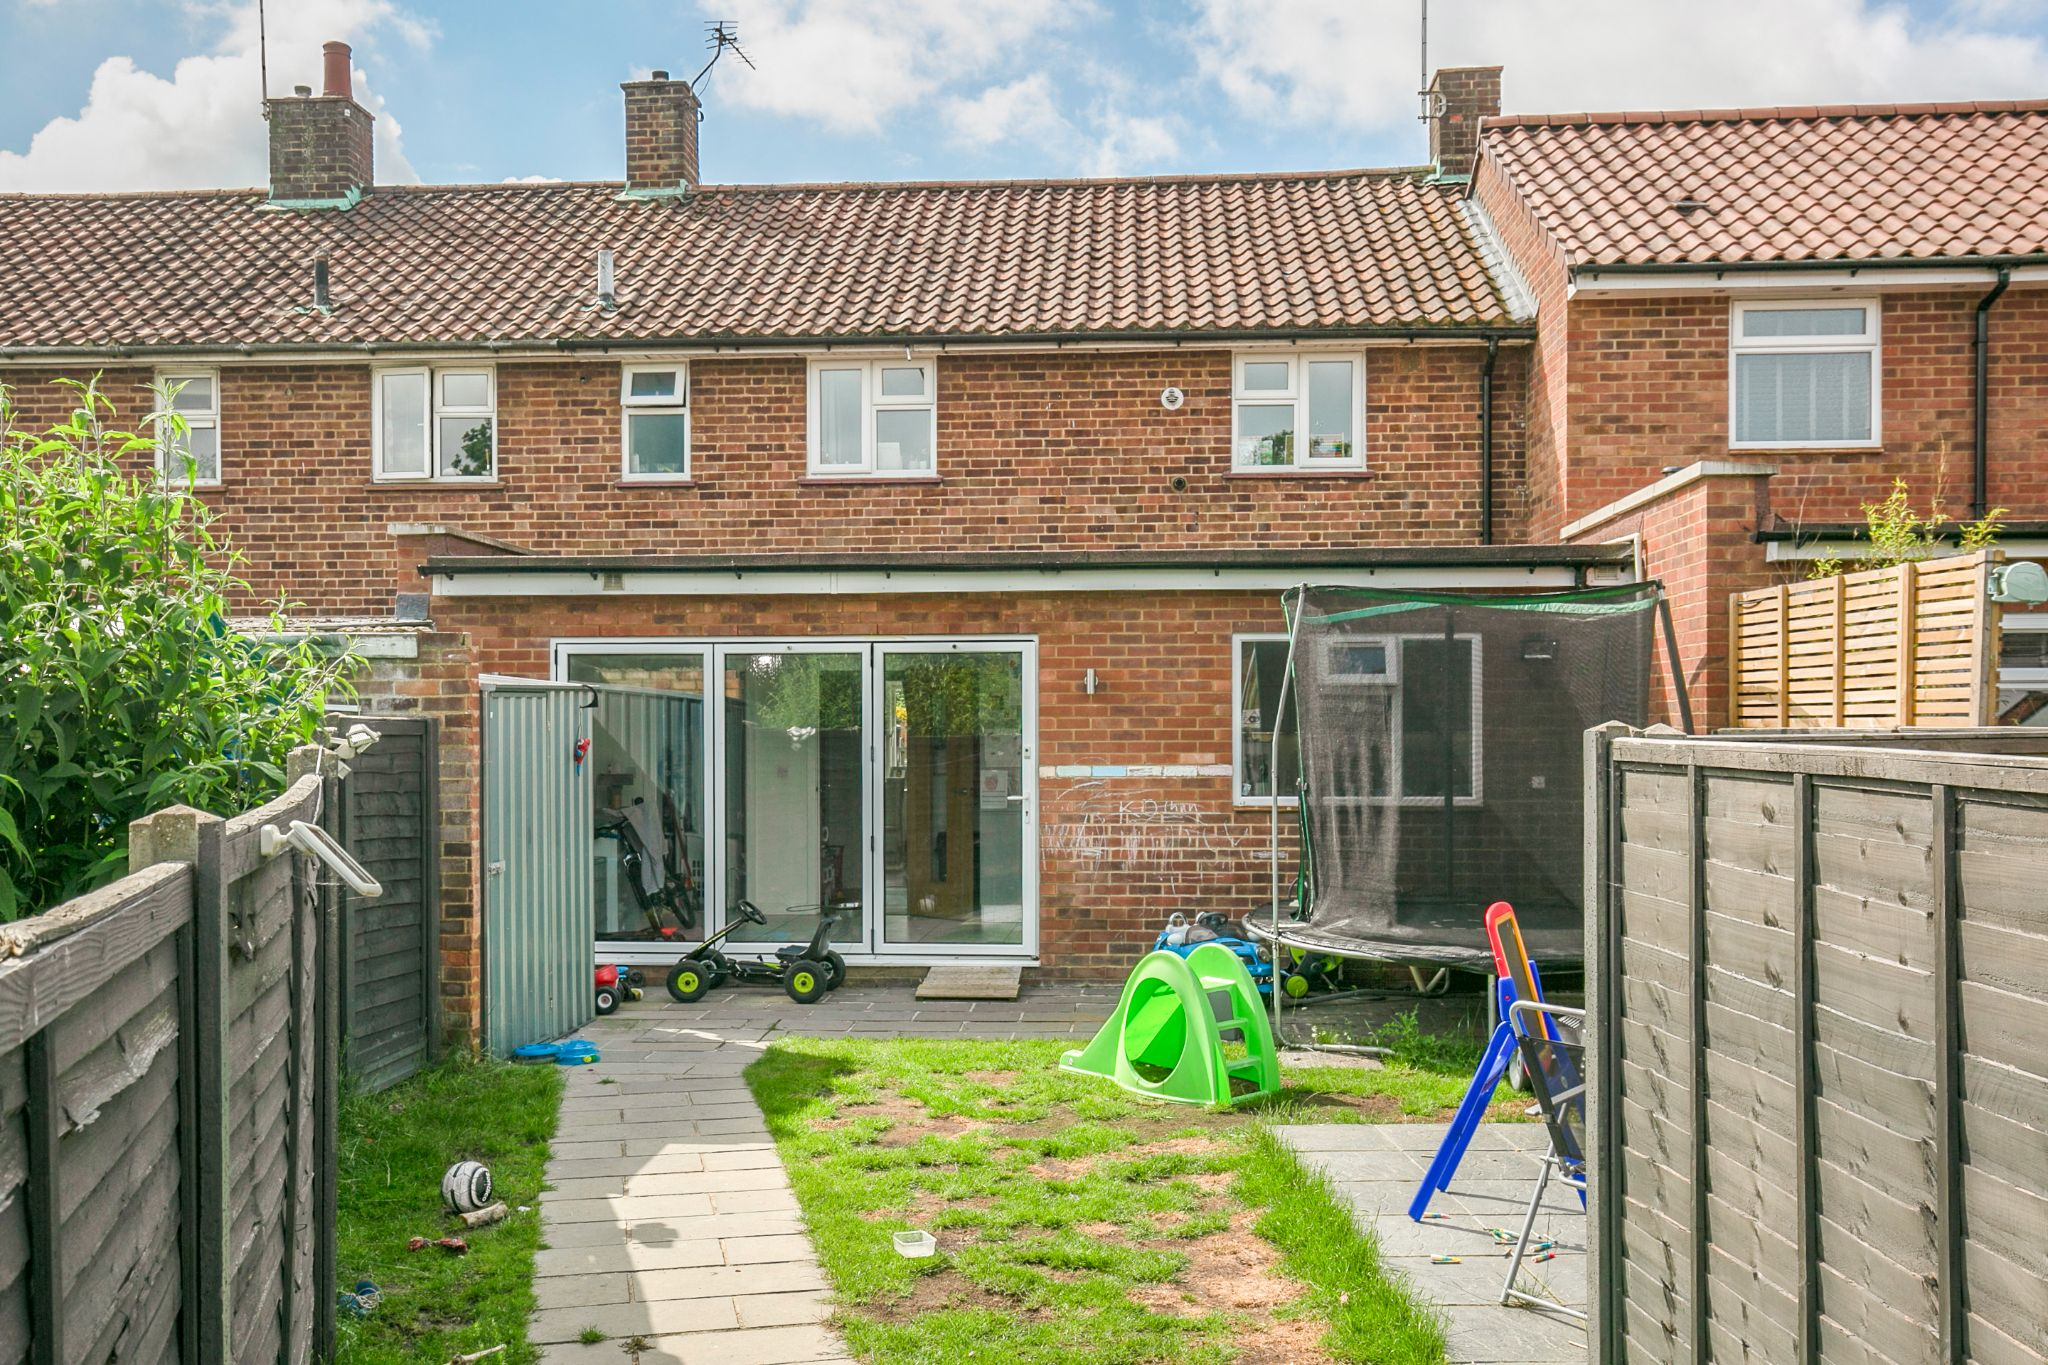 3 bedroom mid terraced house For Sale in Hatfield - Photograph 2